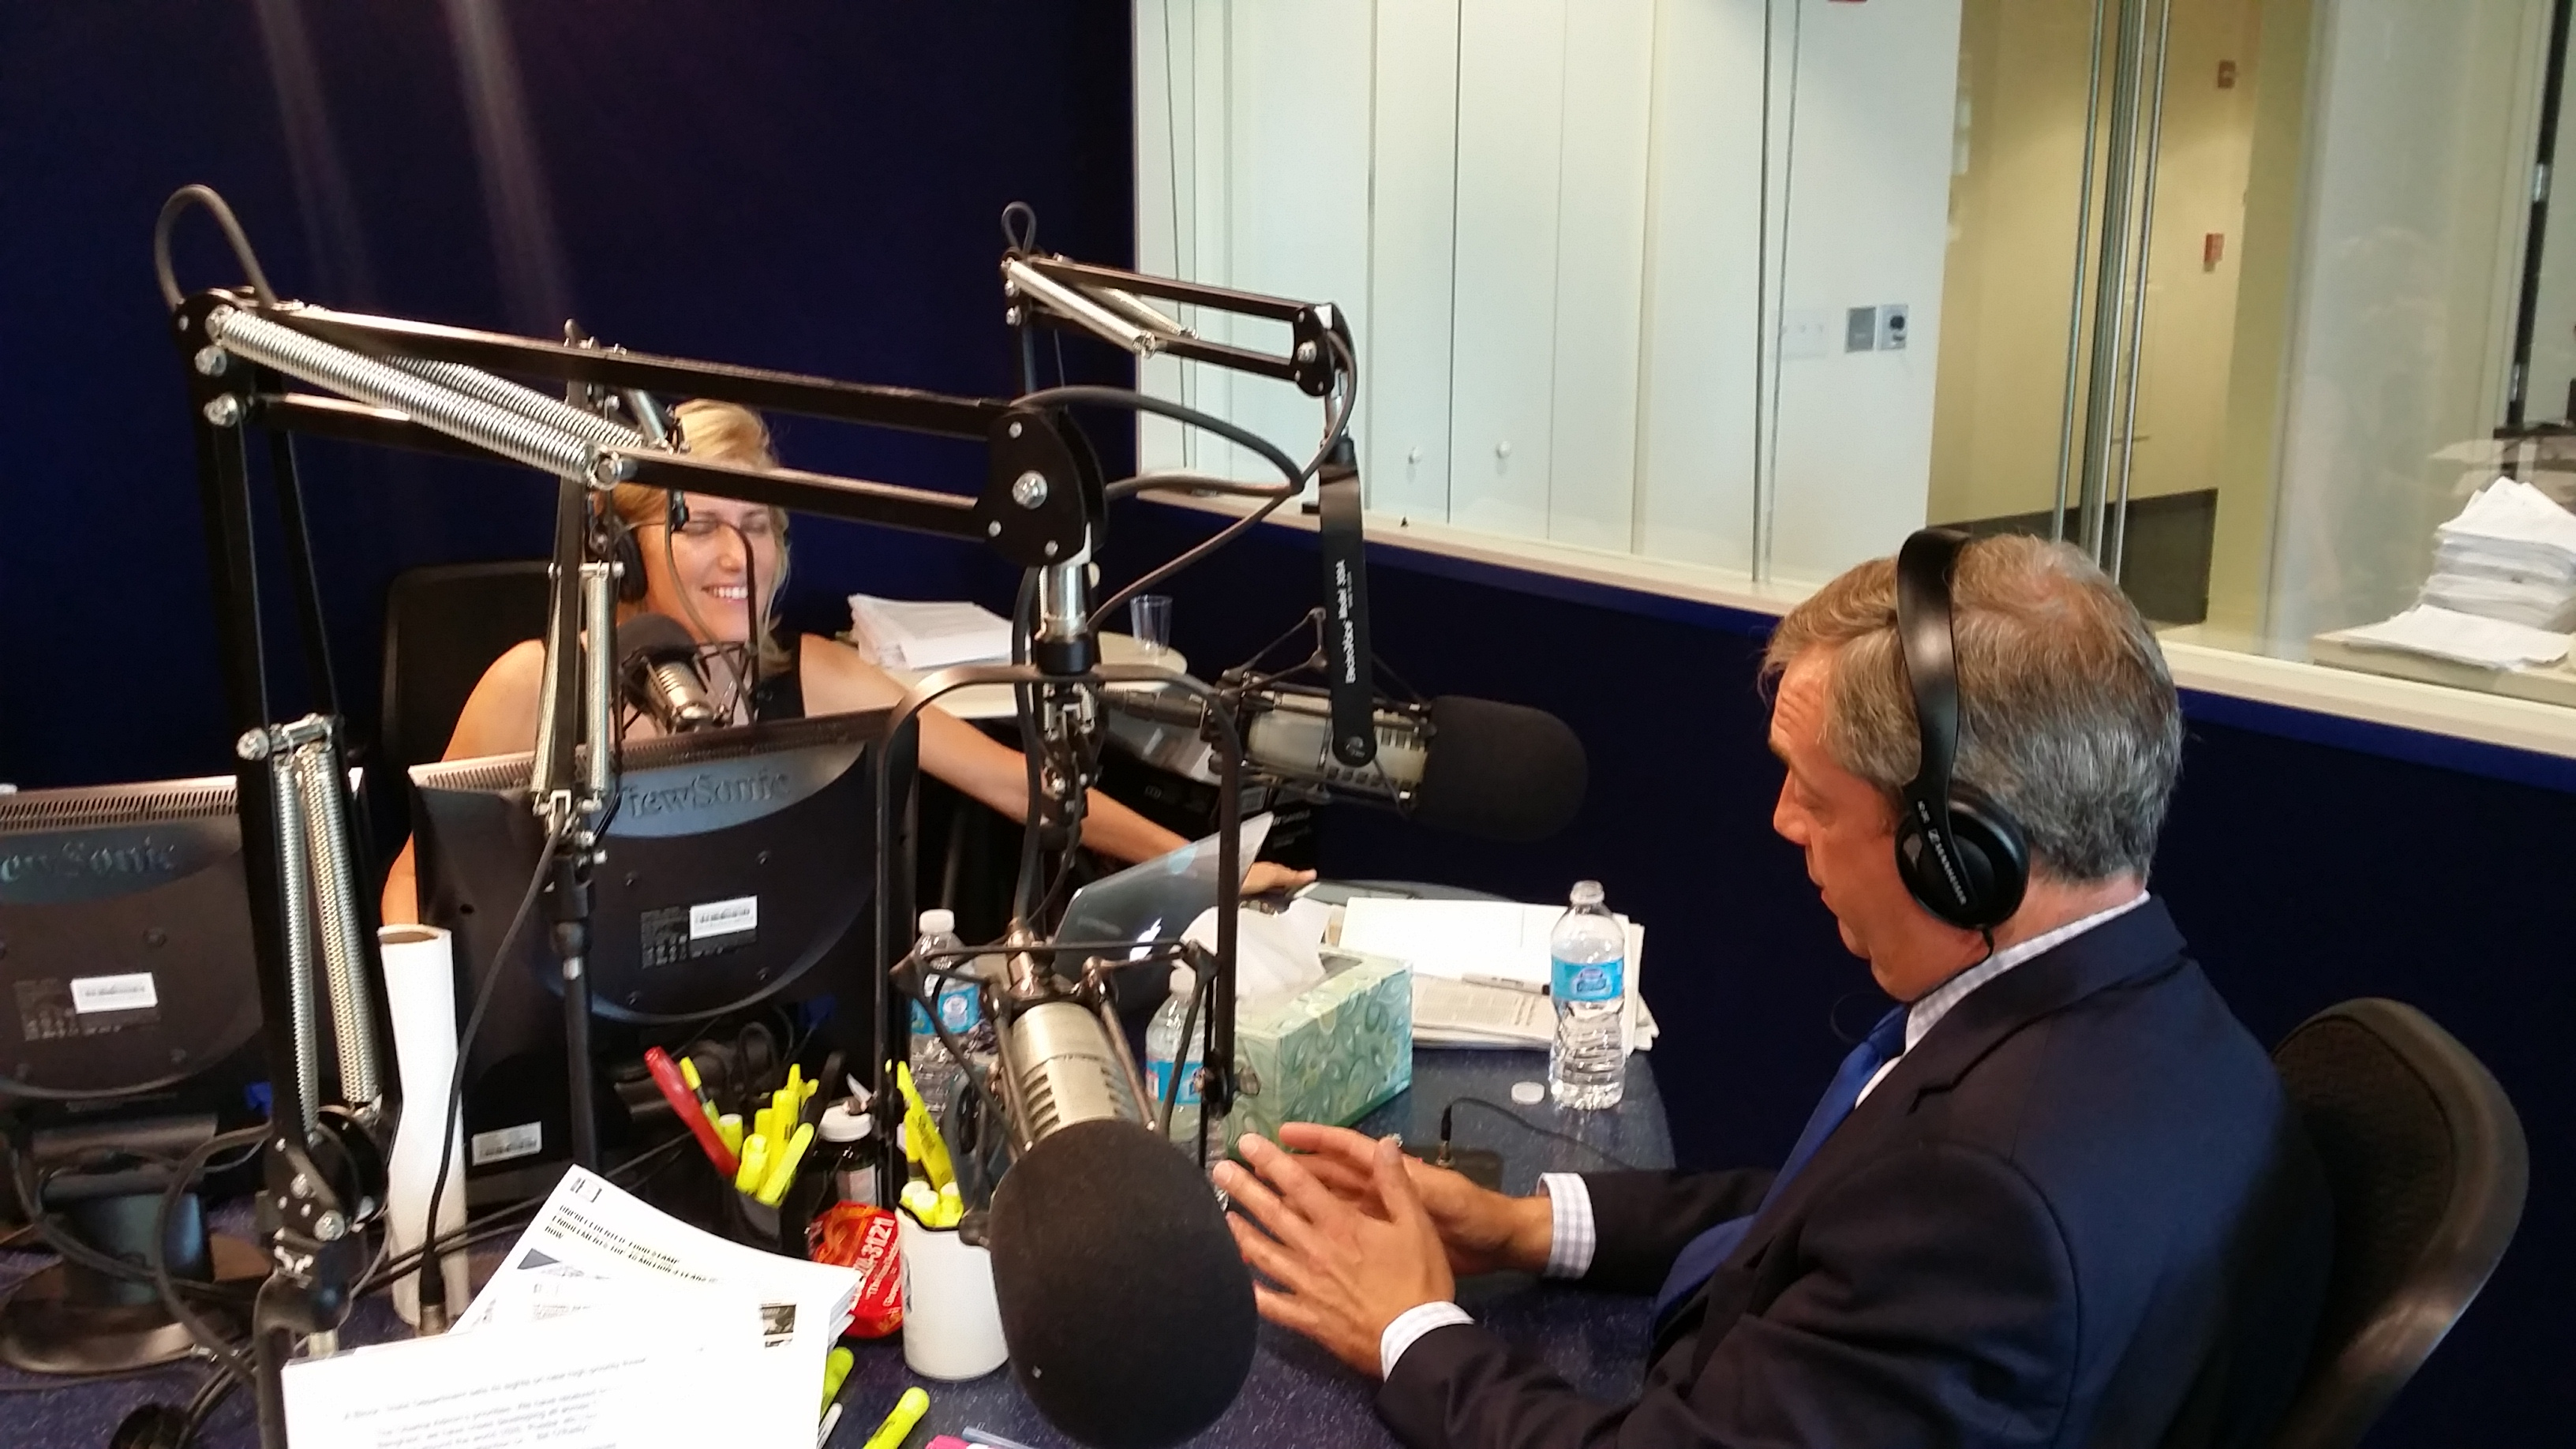 LISTEN: UKIP Leader Nigel Farage Slams EU, Piers Morgan, and Admits 'I'm Flawed' on Laura Ingraham Radio Show